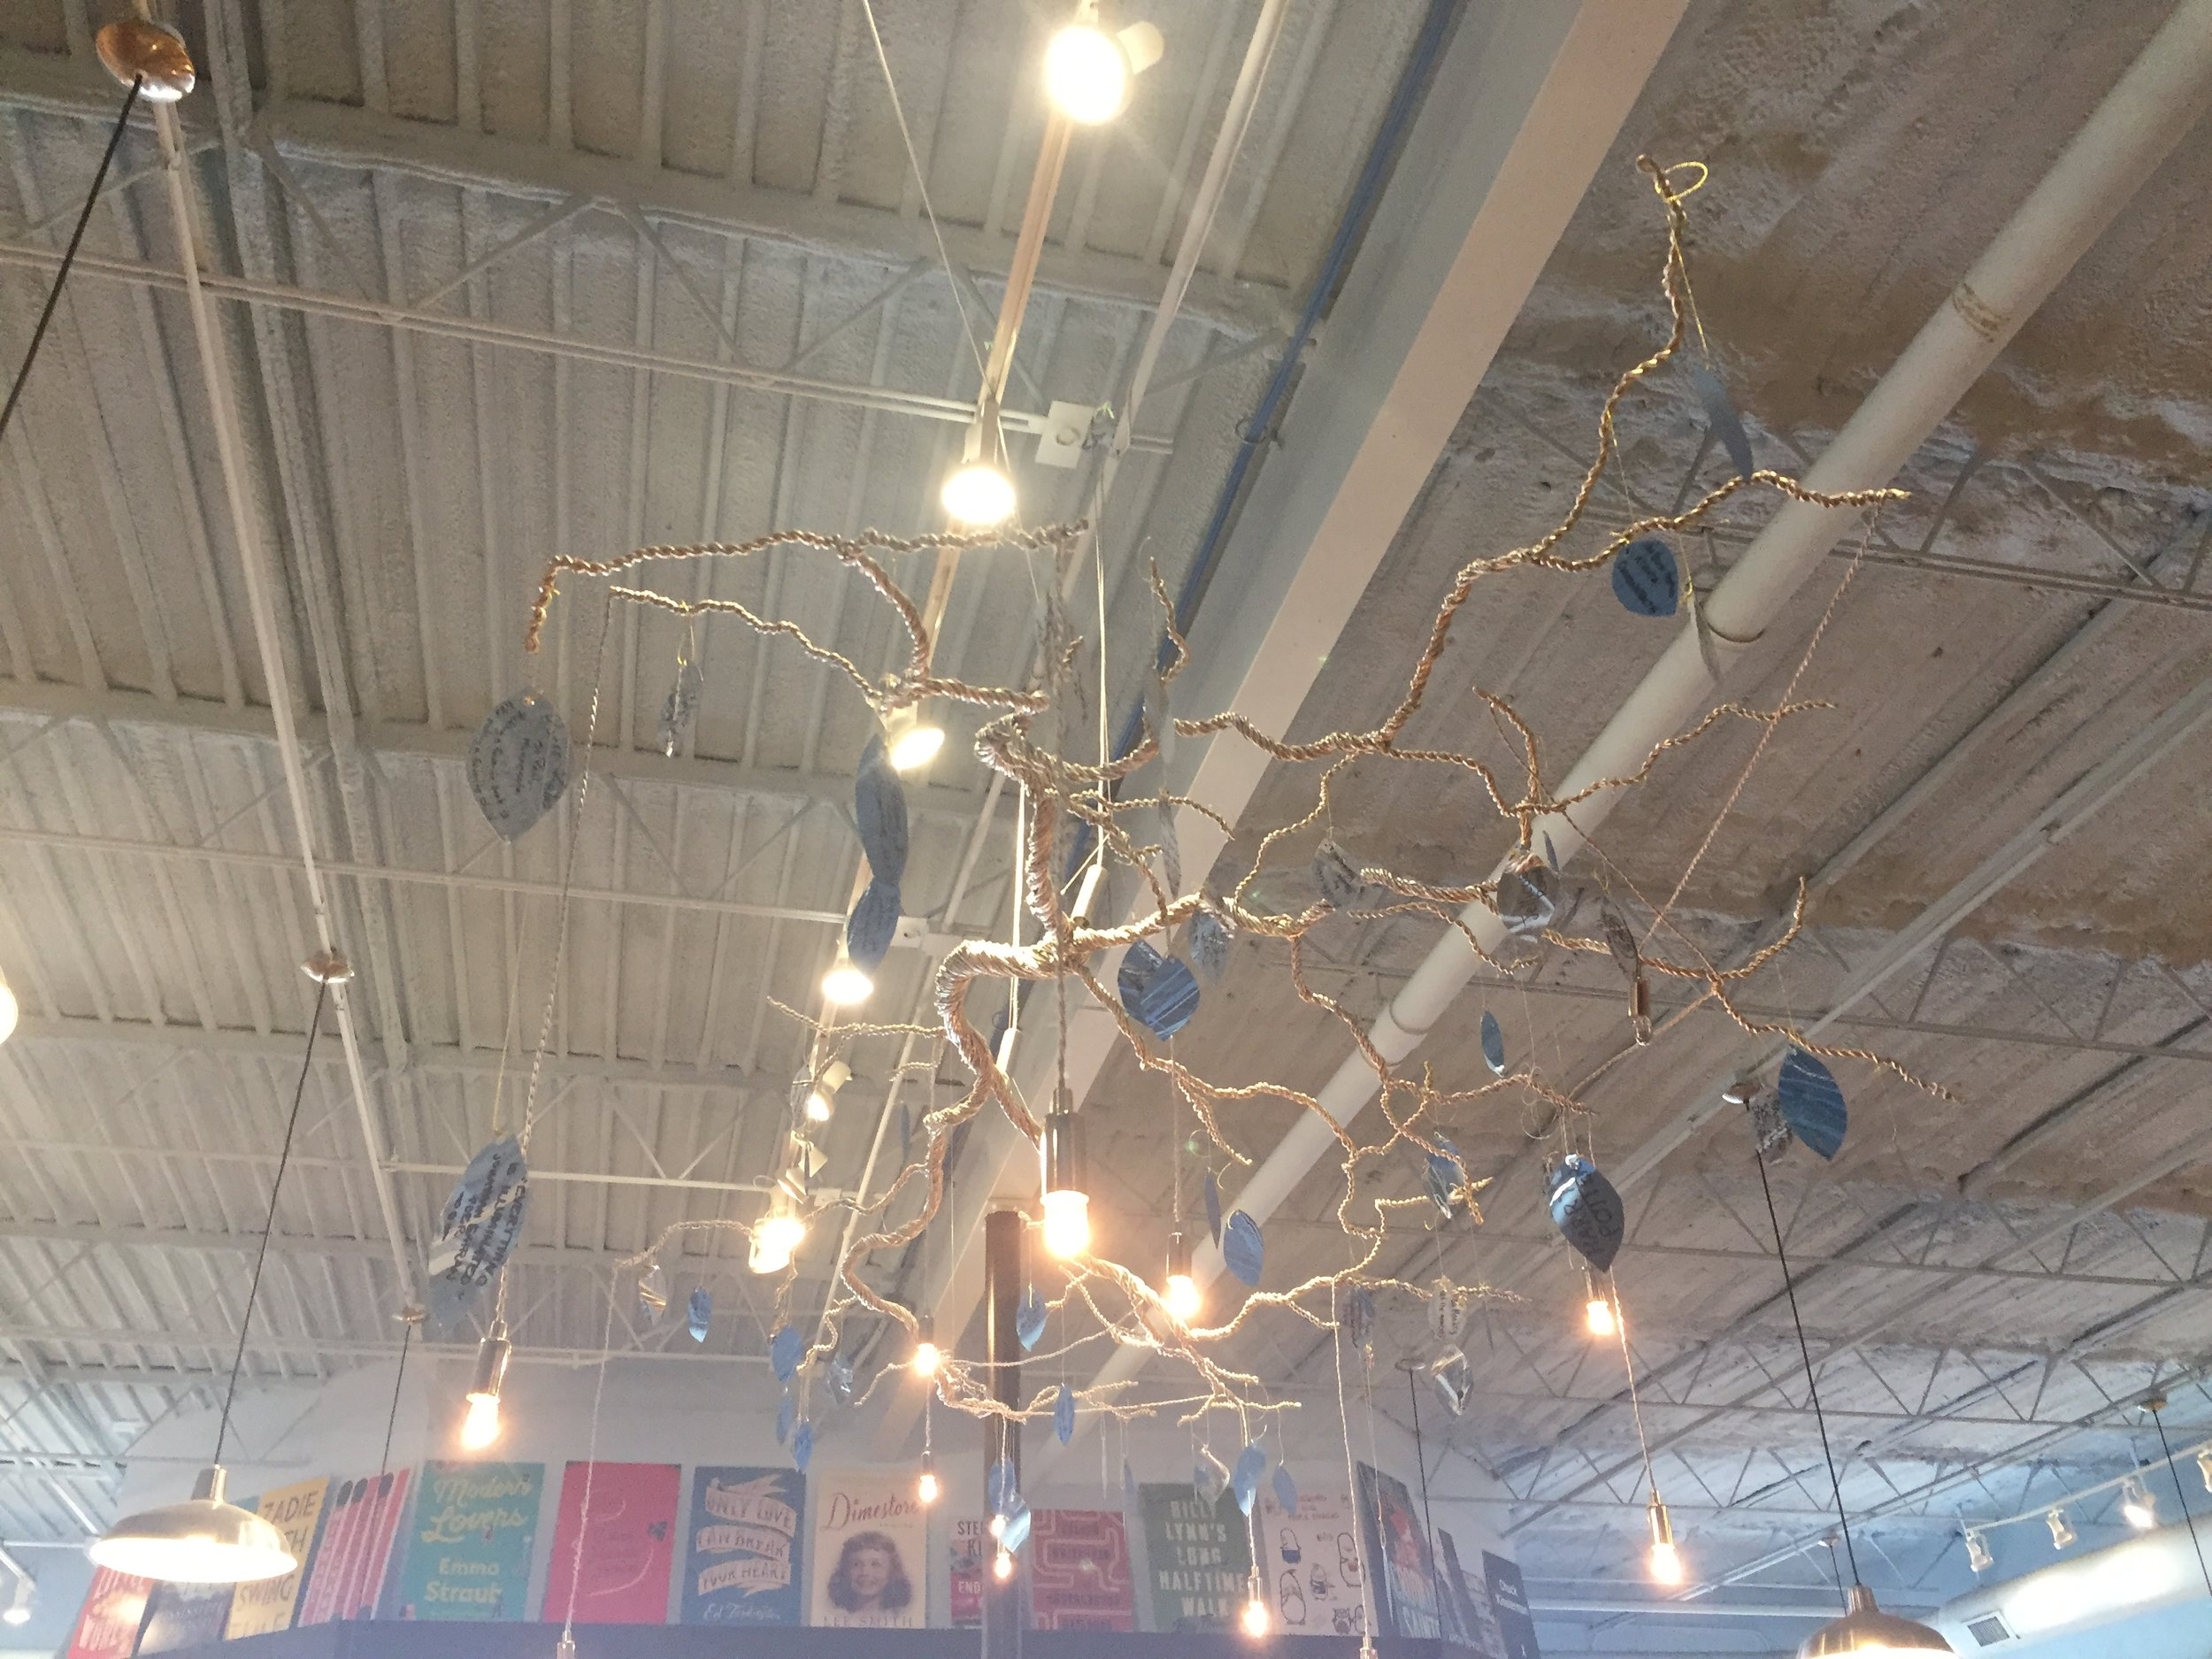 image description: An installation art sculpture hanging from the ceiling. It looks like tree branches and leaves made out of metal. There are writing on the leaves, but it was too small for me to read.